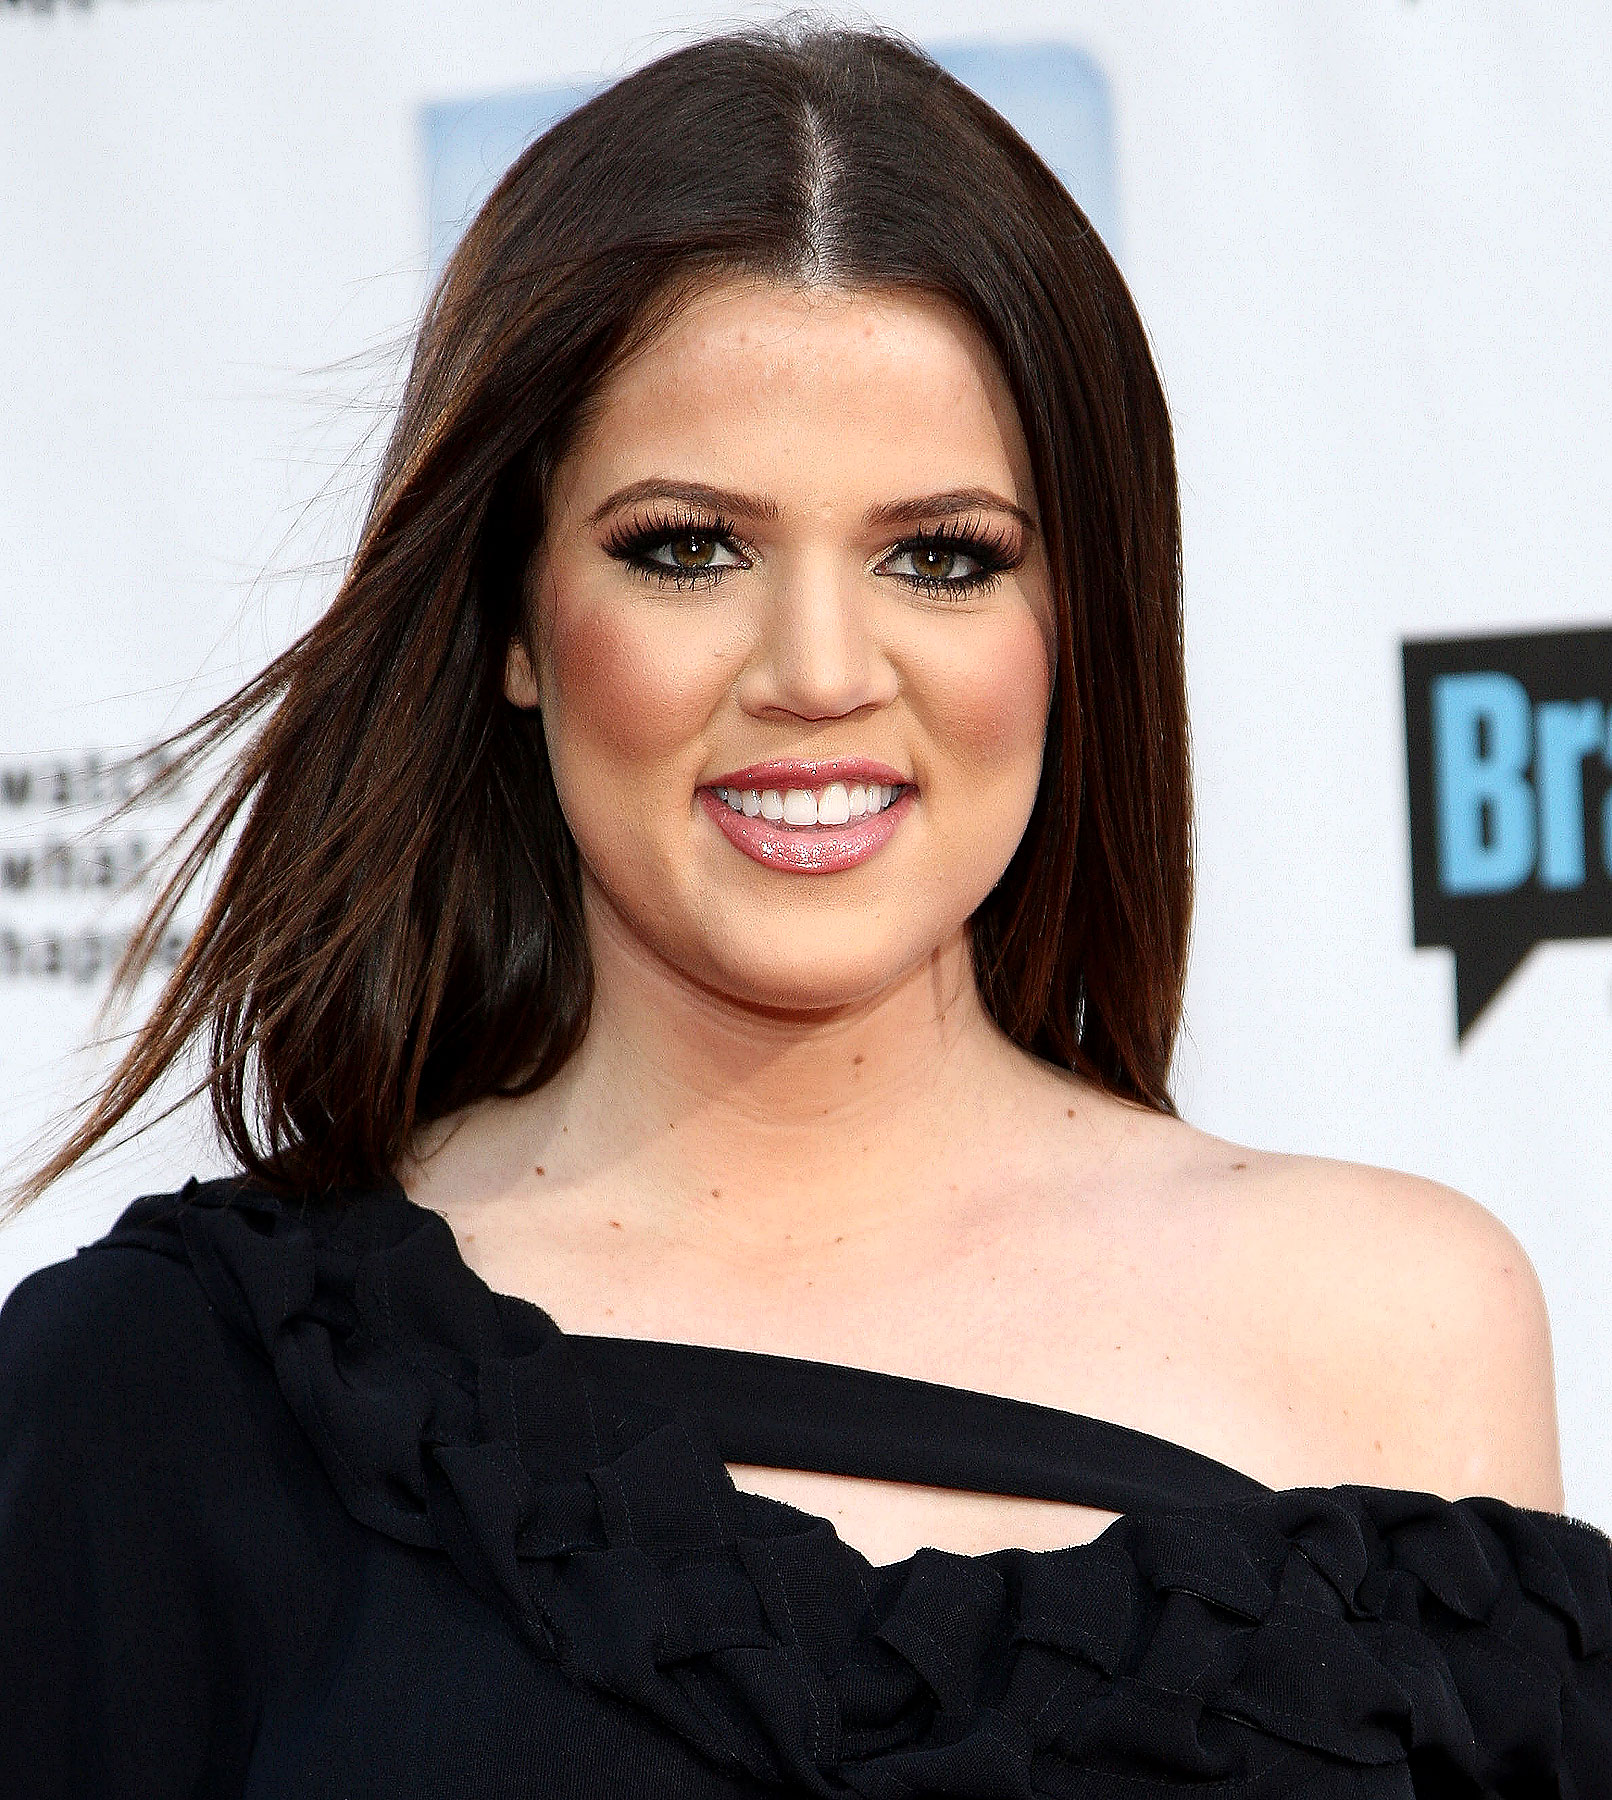 Khloe Kardashian Blasts Donald Trump, Roots for Joan Rivers